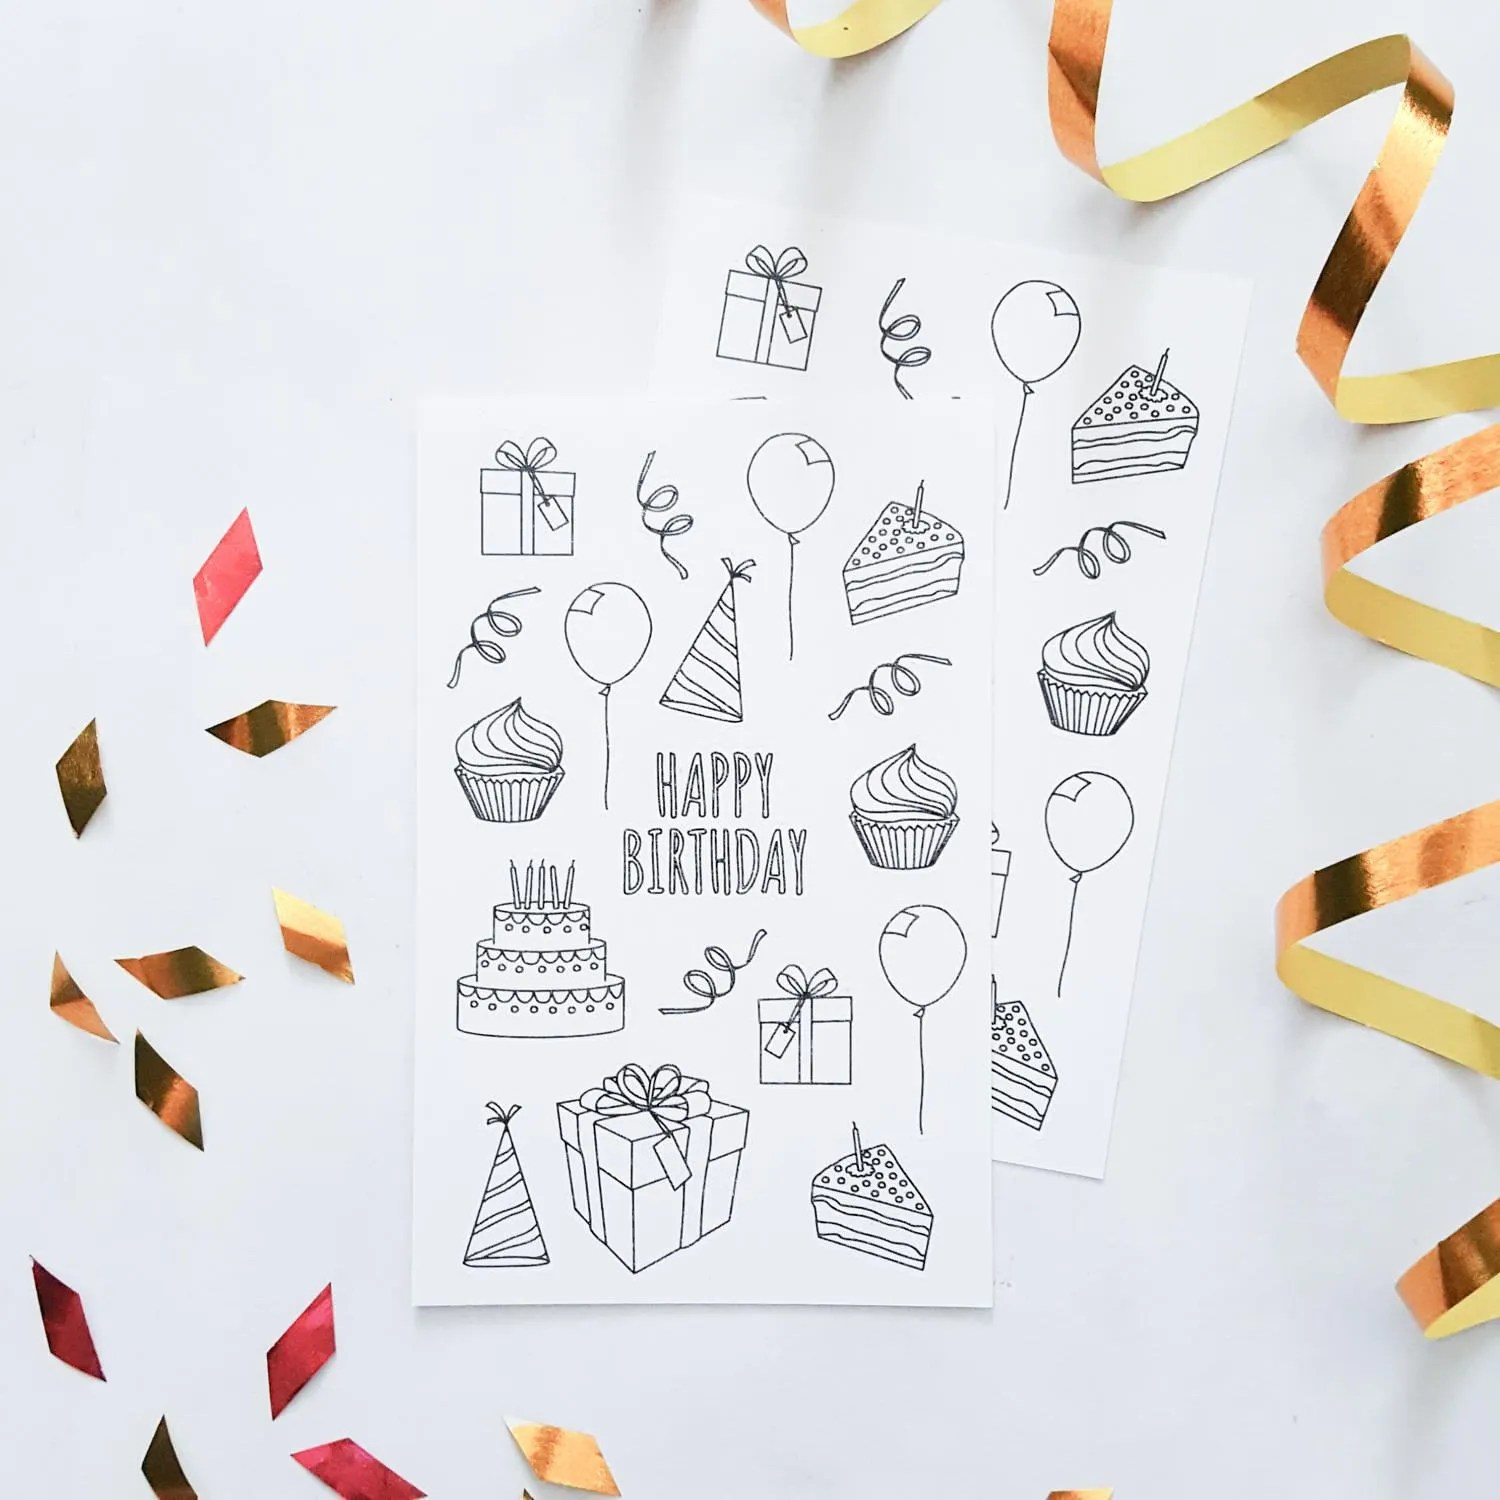 Happy Birthday Planner Stickers Coloring Birthday Stickers - microsoft daily planner